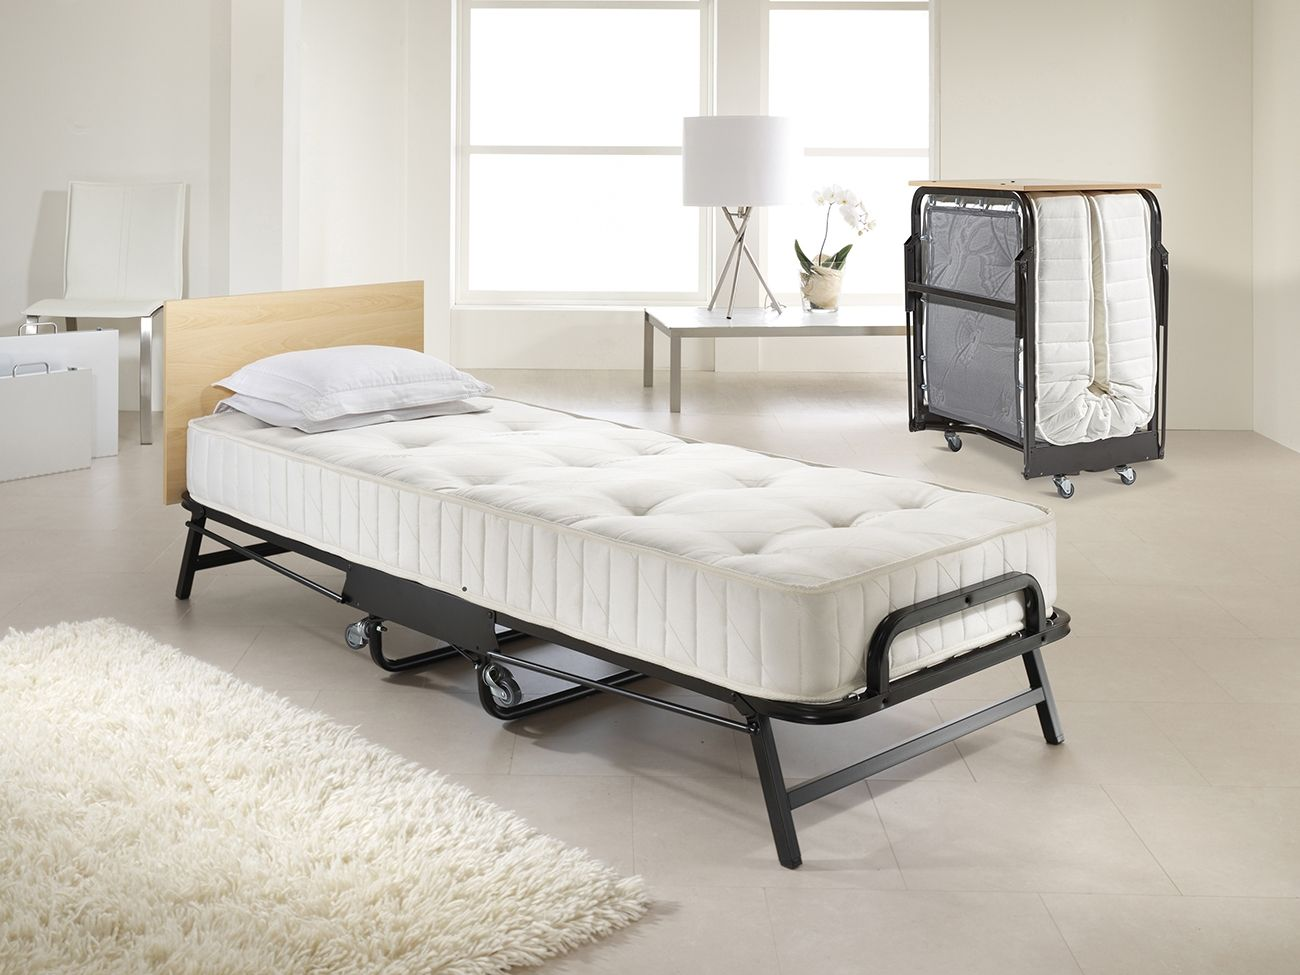 - Jaybe Crown Premier Single Folding Bed With Sprung Mattress Folding Guest  Bed, Guest Bed, Folding Beds